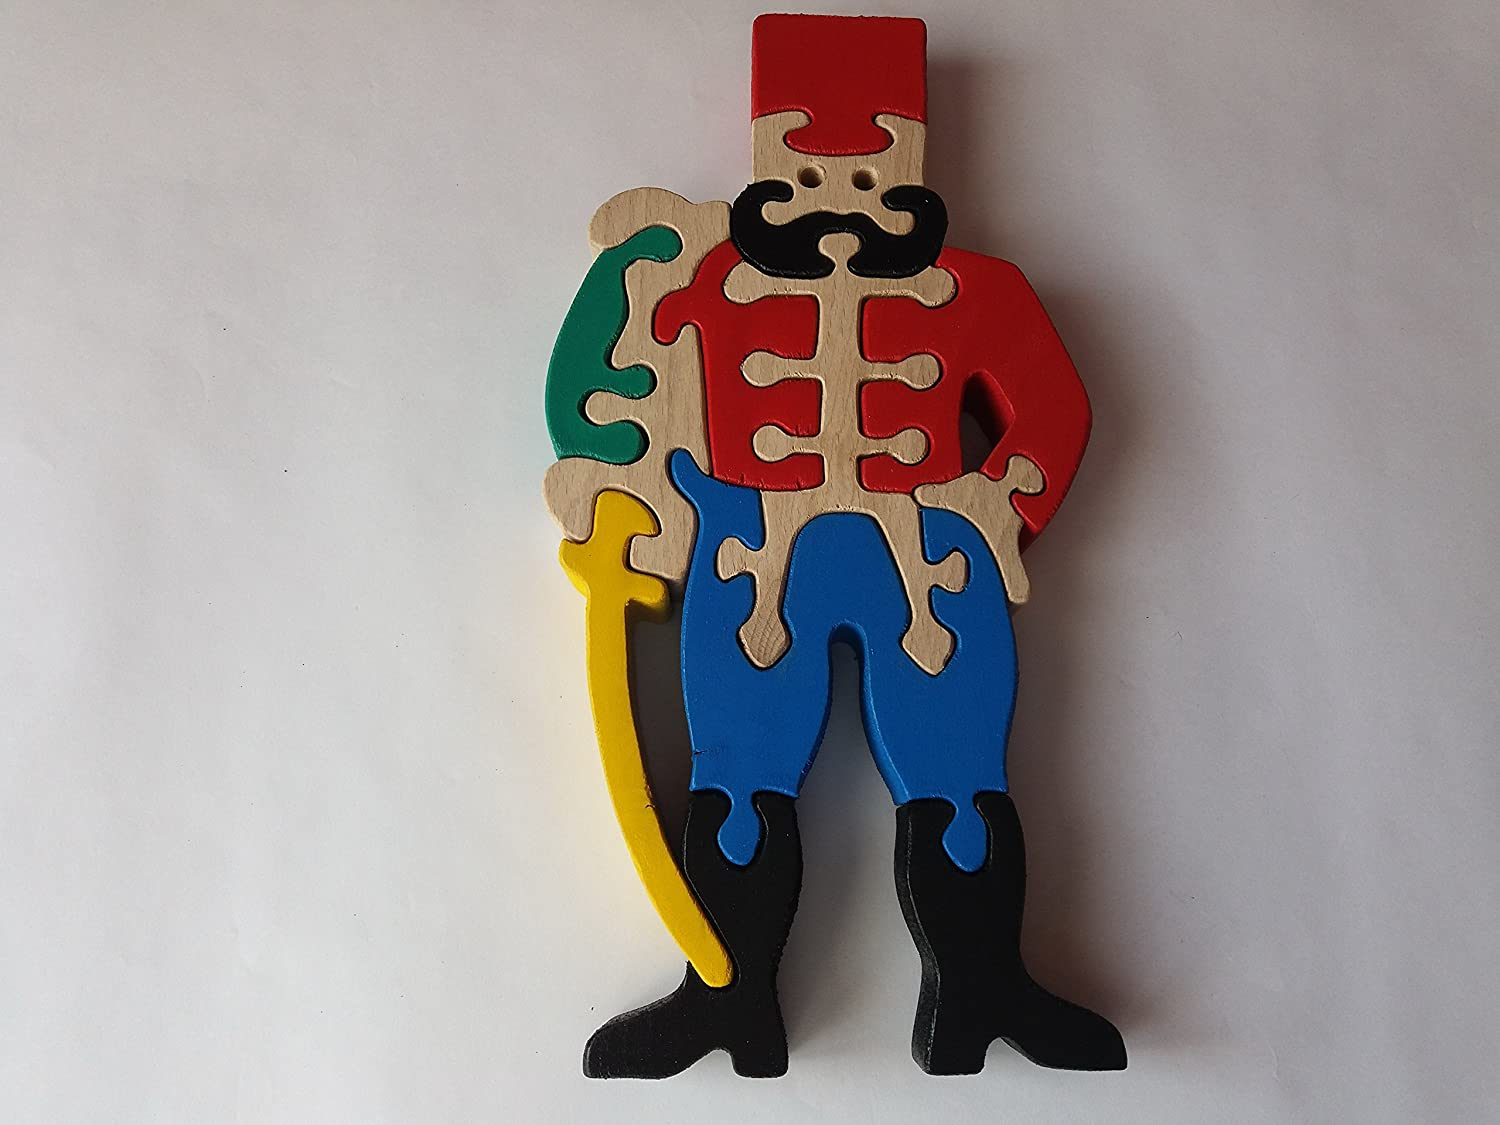 Wooden puzzle soldier handmade historical fighter toy gift for children massive beech wood toy army war soldier